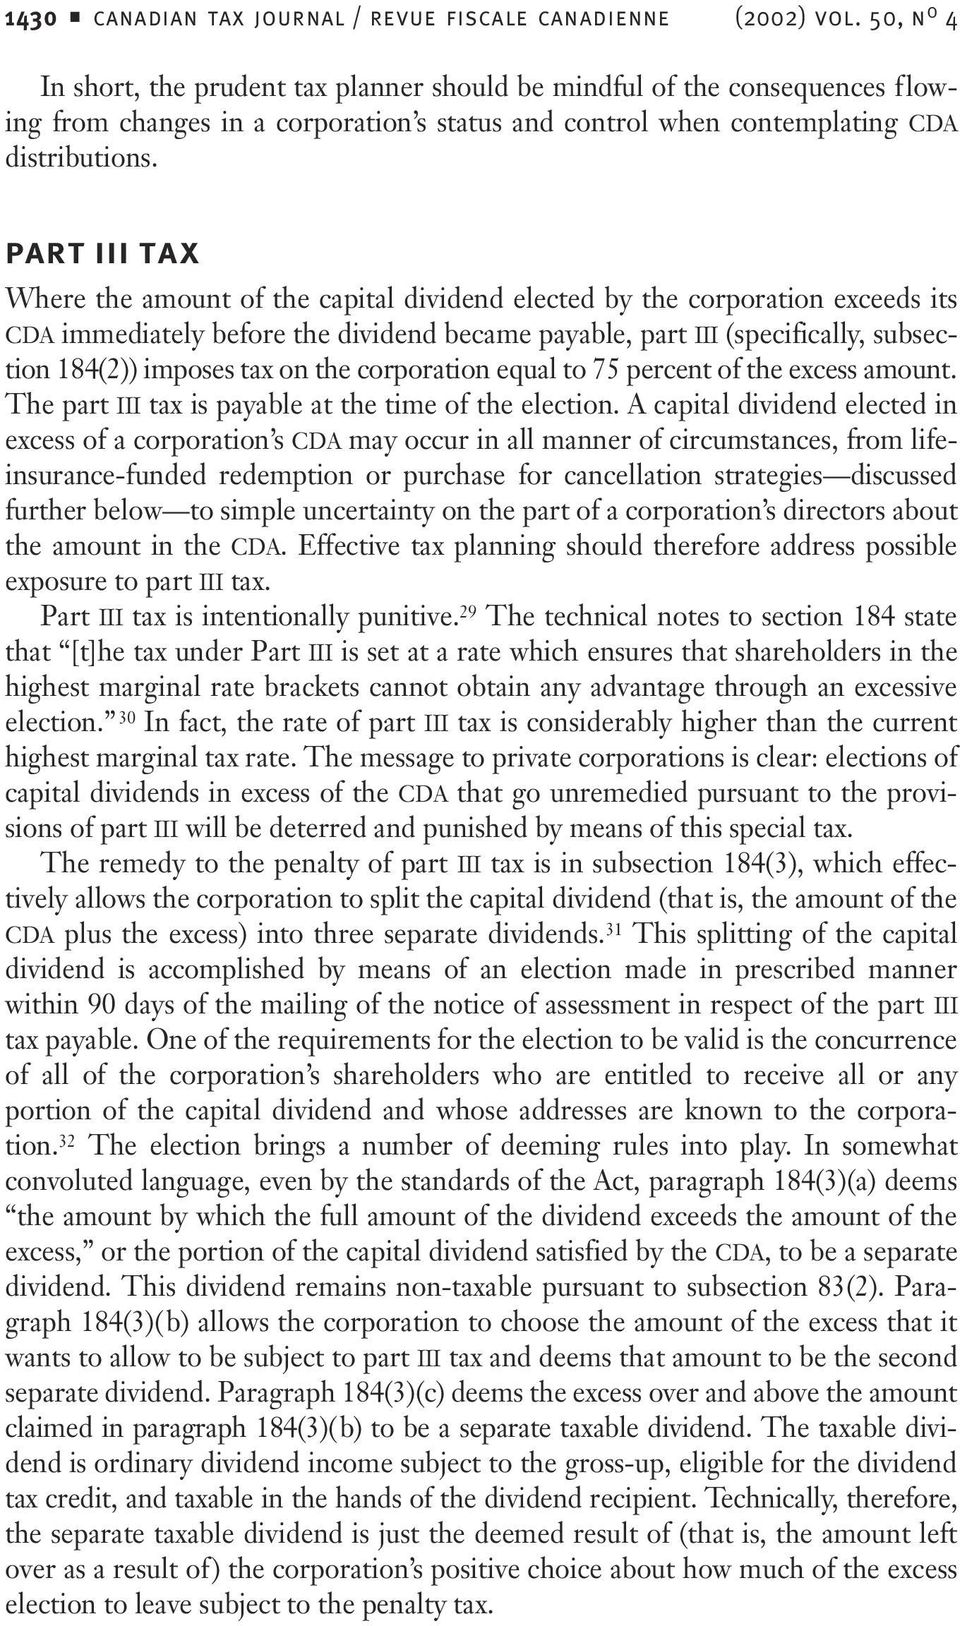 PART III TAX Where the amount of the capital dividend elected by the corporation exceeds its CDA immediately before the dividend became payable, part III (specifically, subsection 184(2)) imposes tax